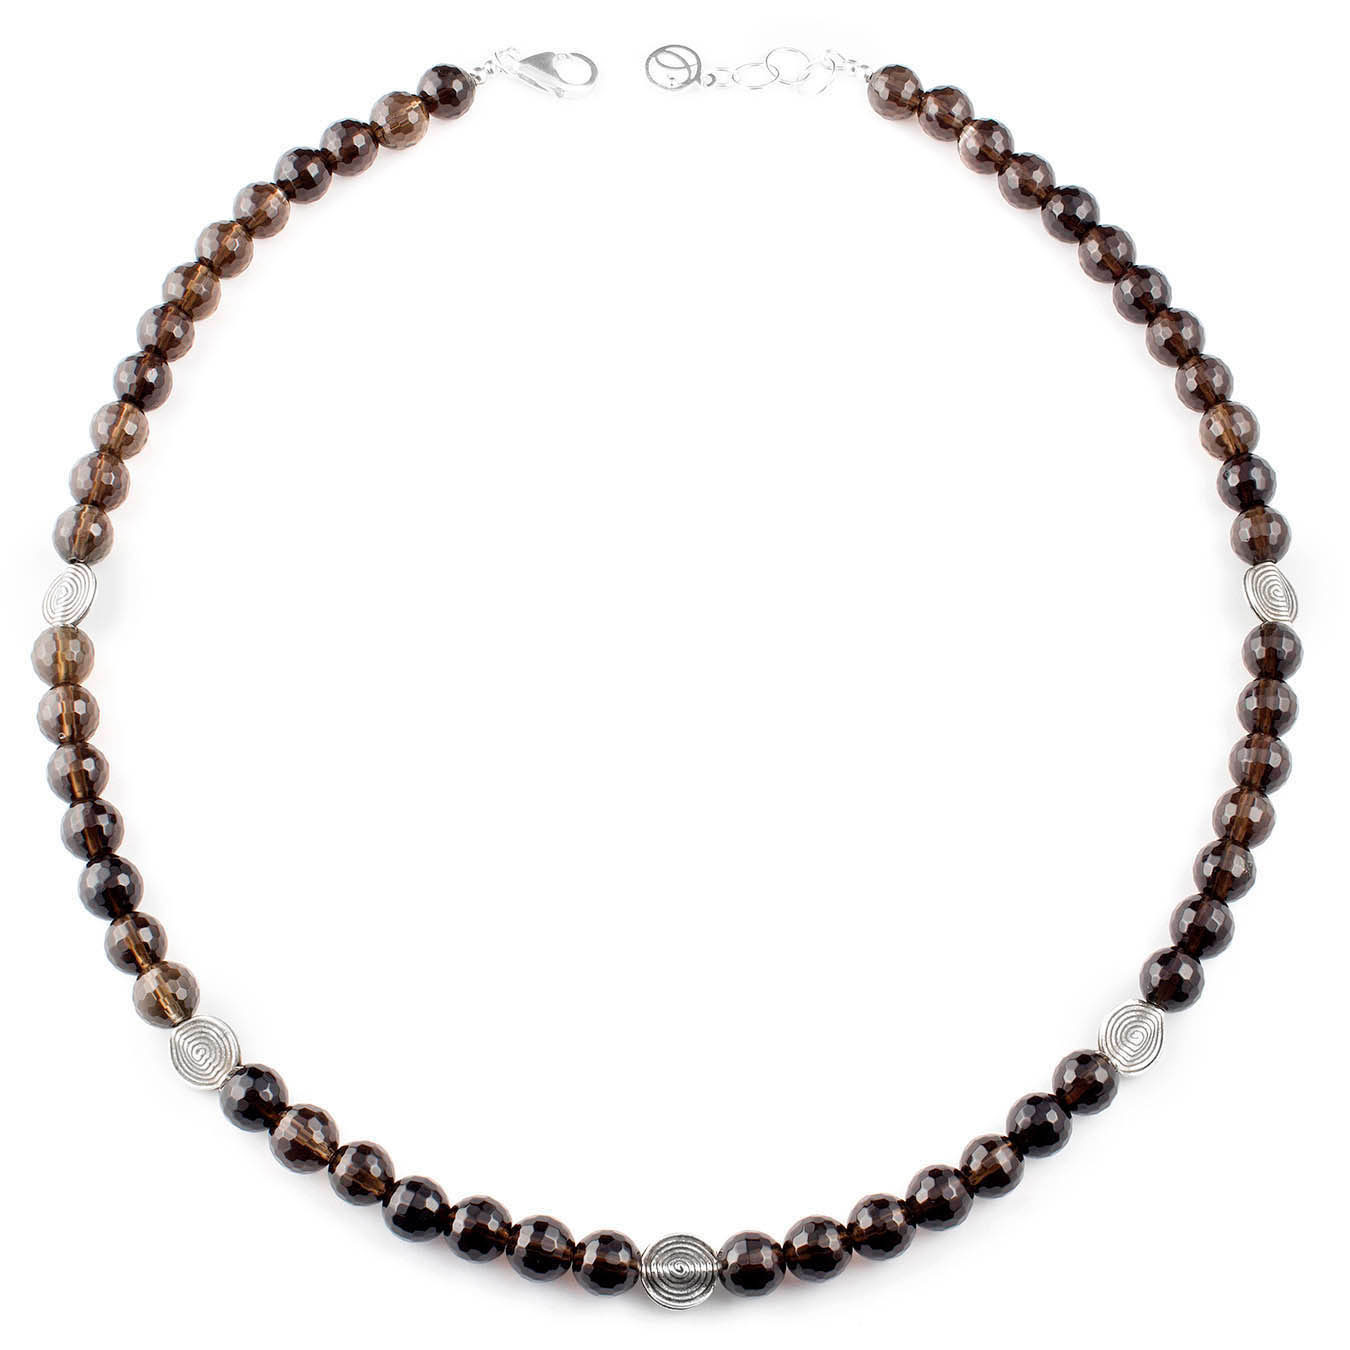 Handcrafted station bead necklace made of smoky quartz and thai silver